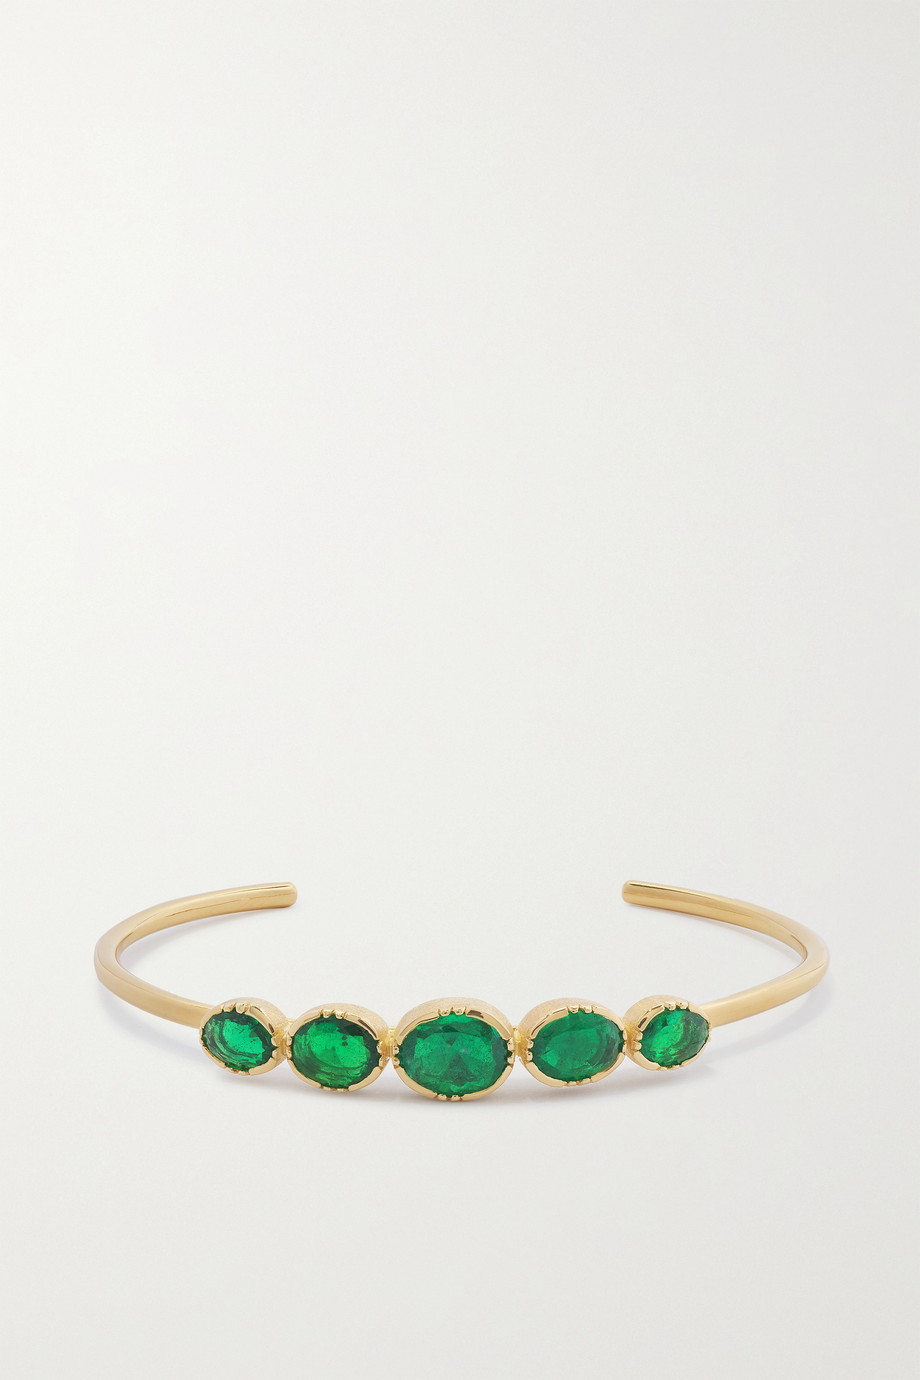 Brooke Gregson Orbit 18-karat gold emerald cuff